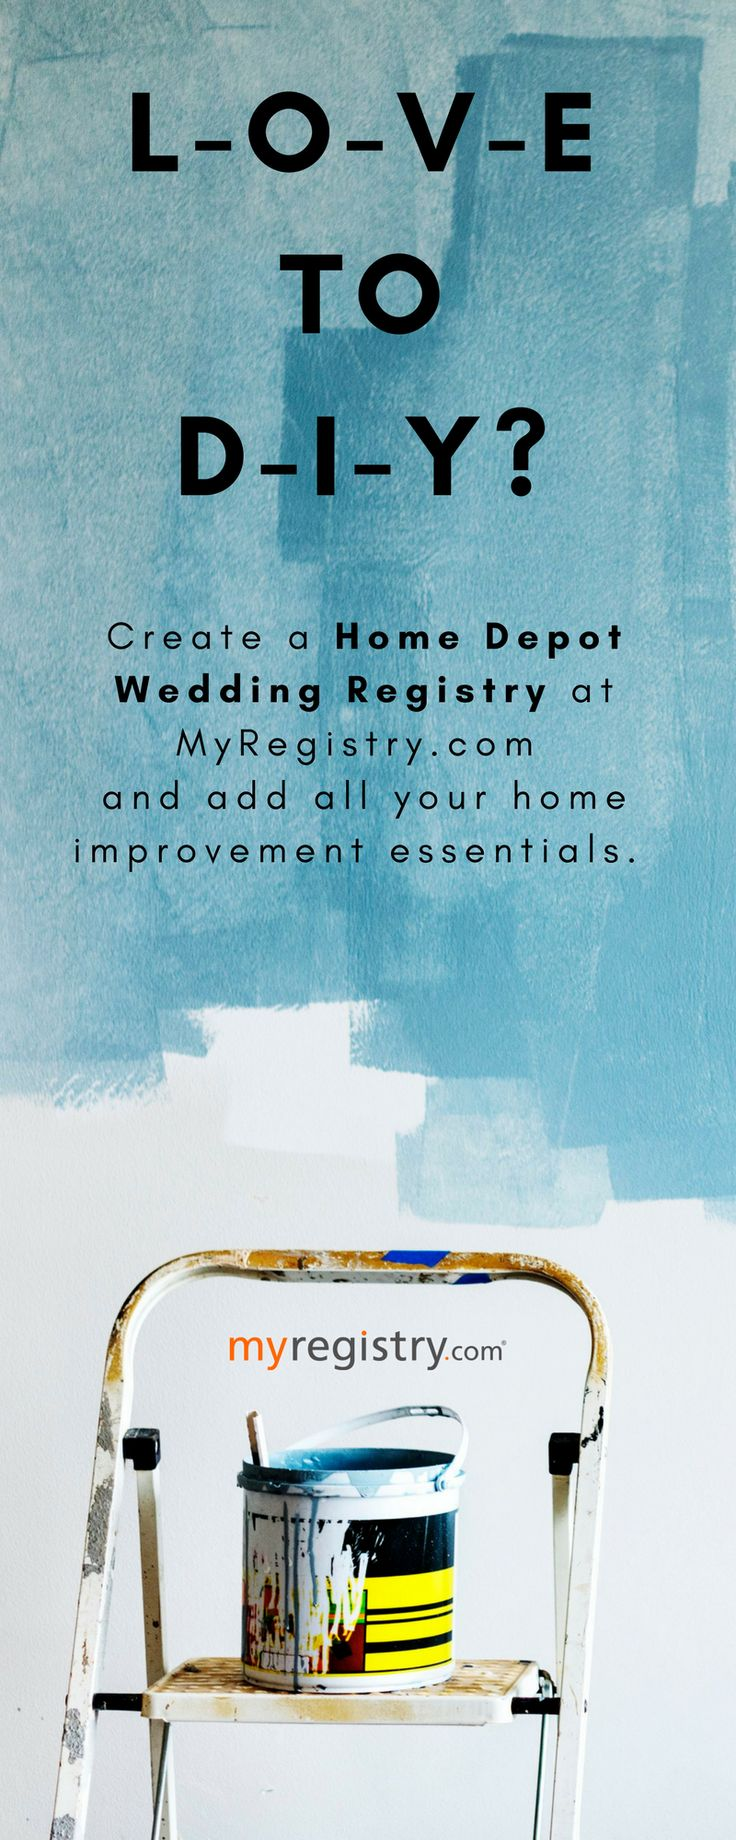 printable bridal registry list%0A Home Depot Wedding Registry   MyRegistry com   Home Improvement   DIY